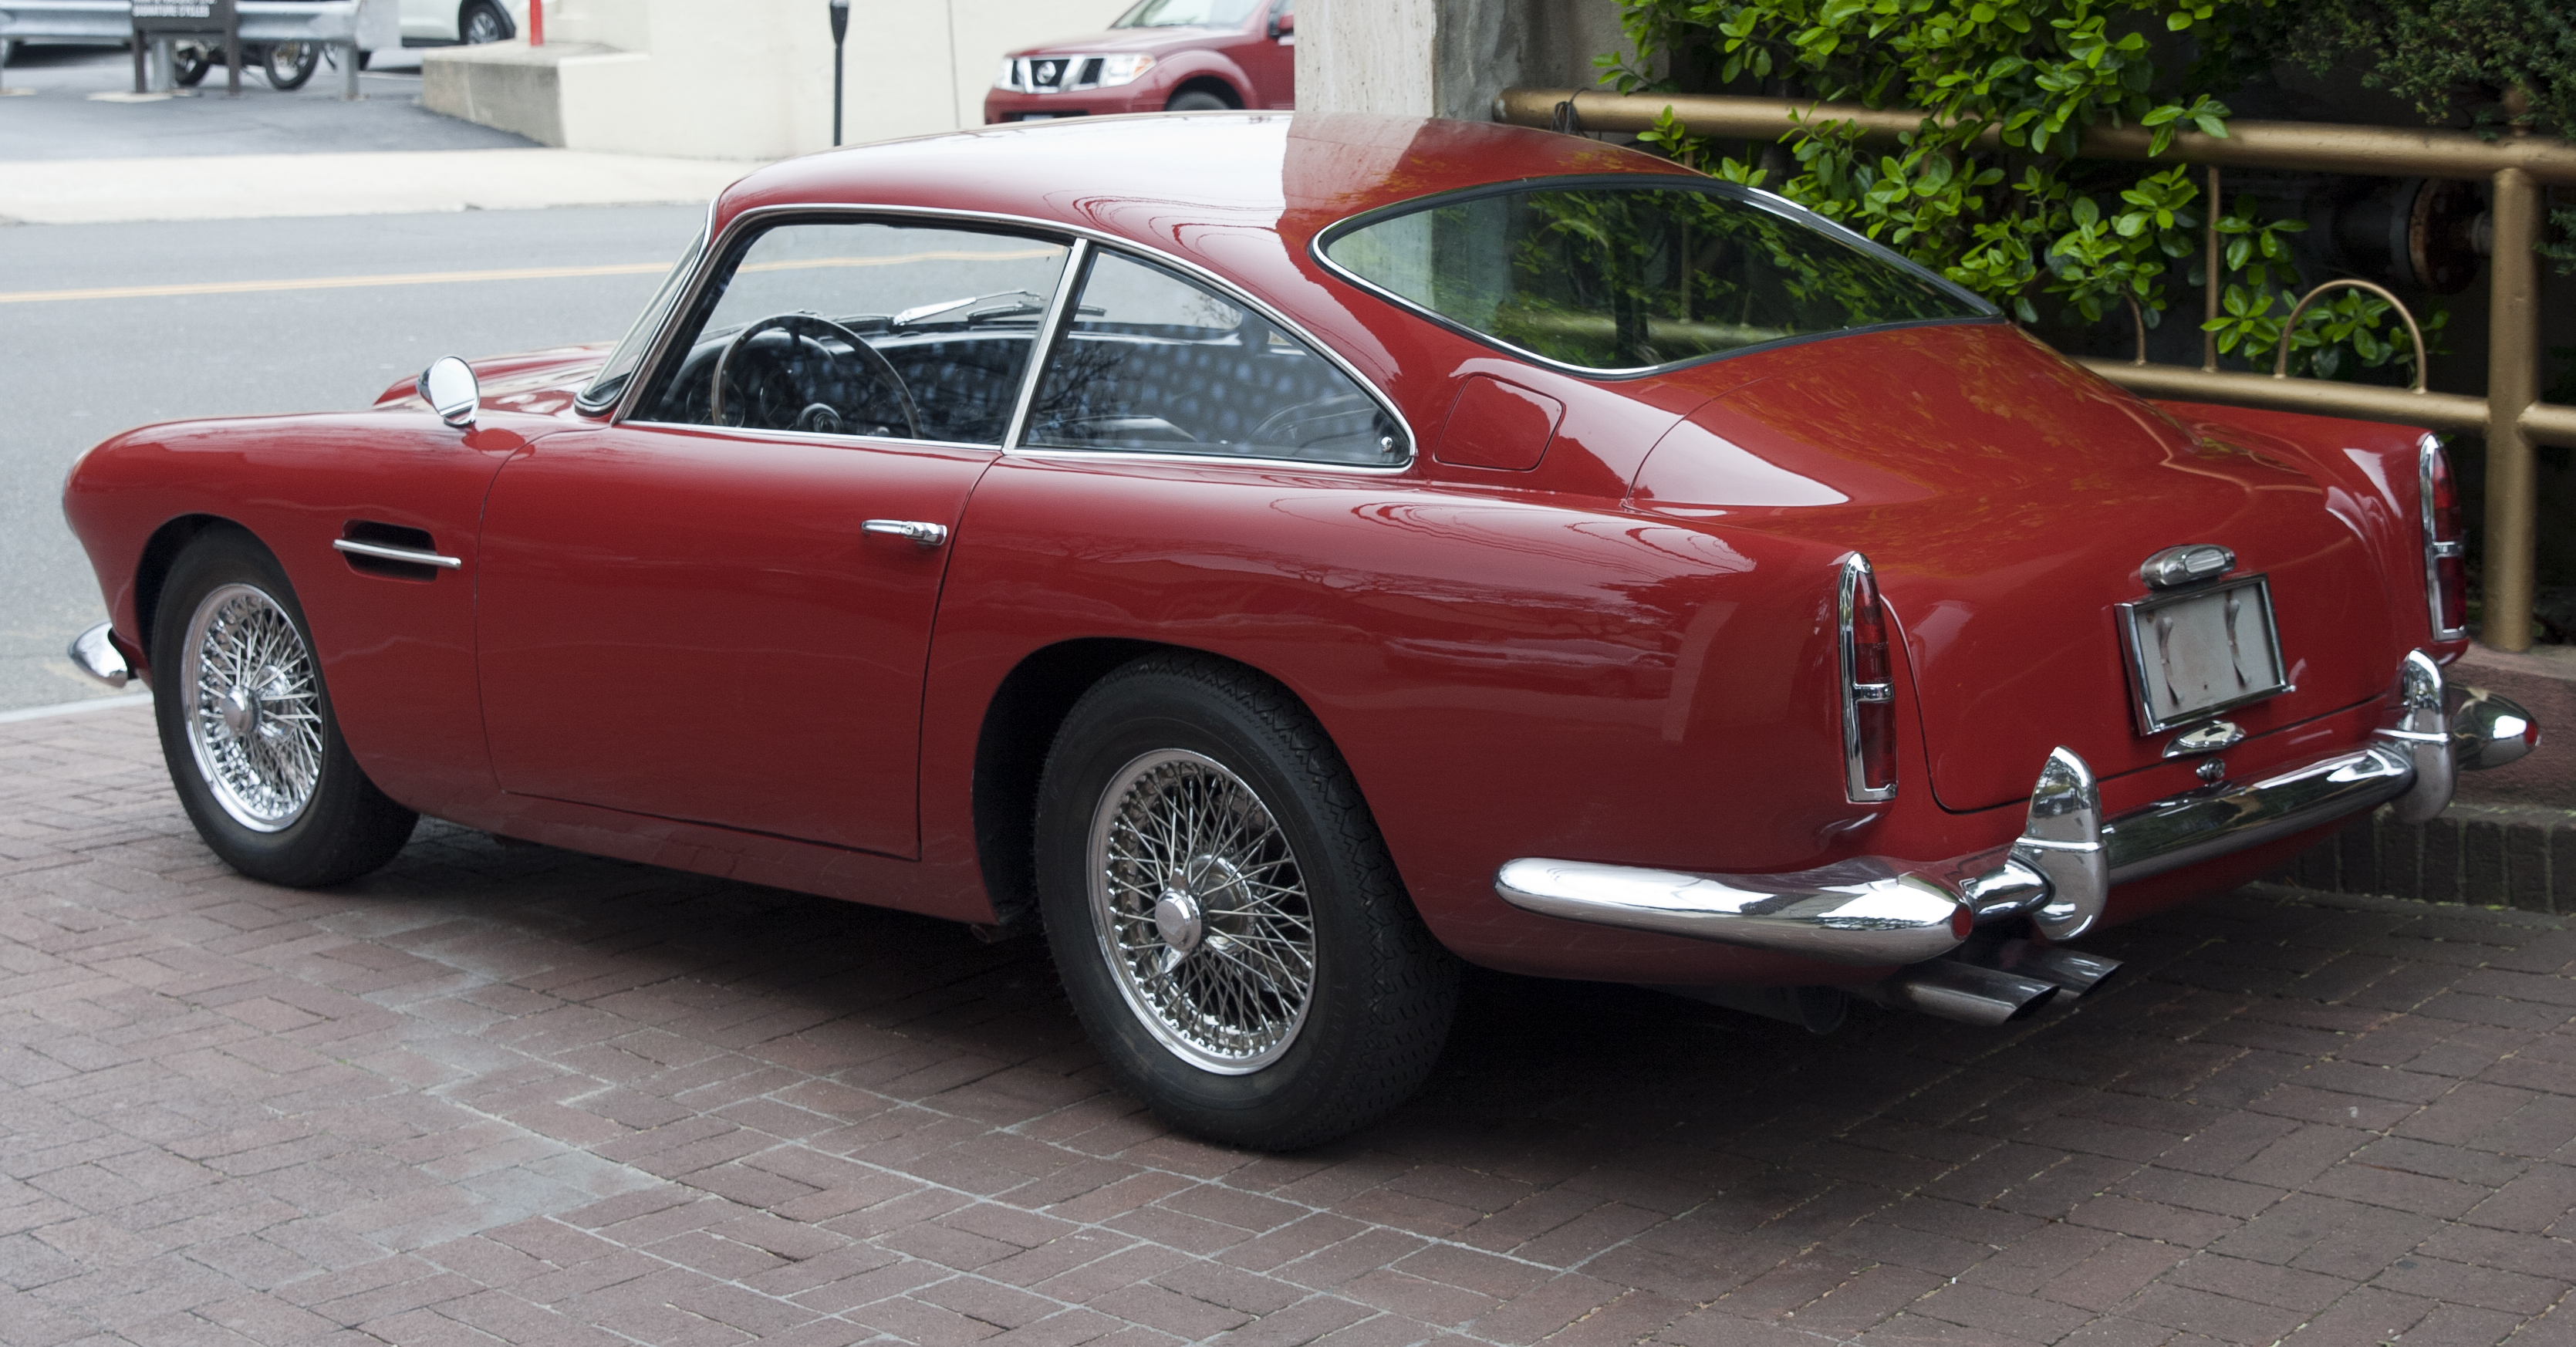 1948 Ferrari 166 Inter Stabilimenti Farina Berli ta as well Gallery gt gt tokyo car style pt 2 moreover Honda Ev Ster Electric Sports Car   Image together with Habit Rouge Guerlain 1965 Valeur Refuge together with Volvo P1800 Jensen 1962. on vintage aston martin